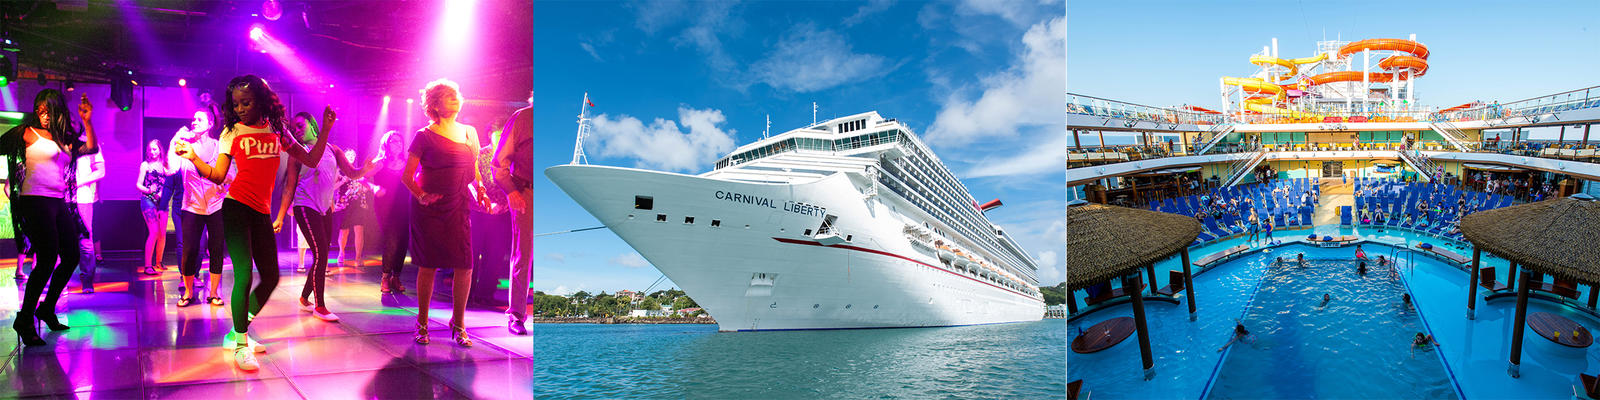 Best Carnival Cruises Reviews And Photos - Age of carnival cruise ships